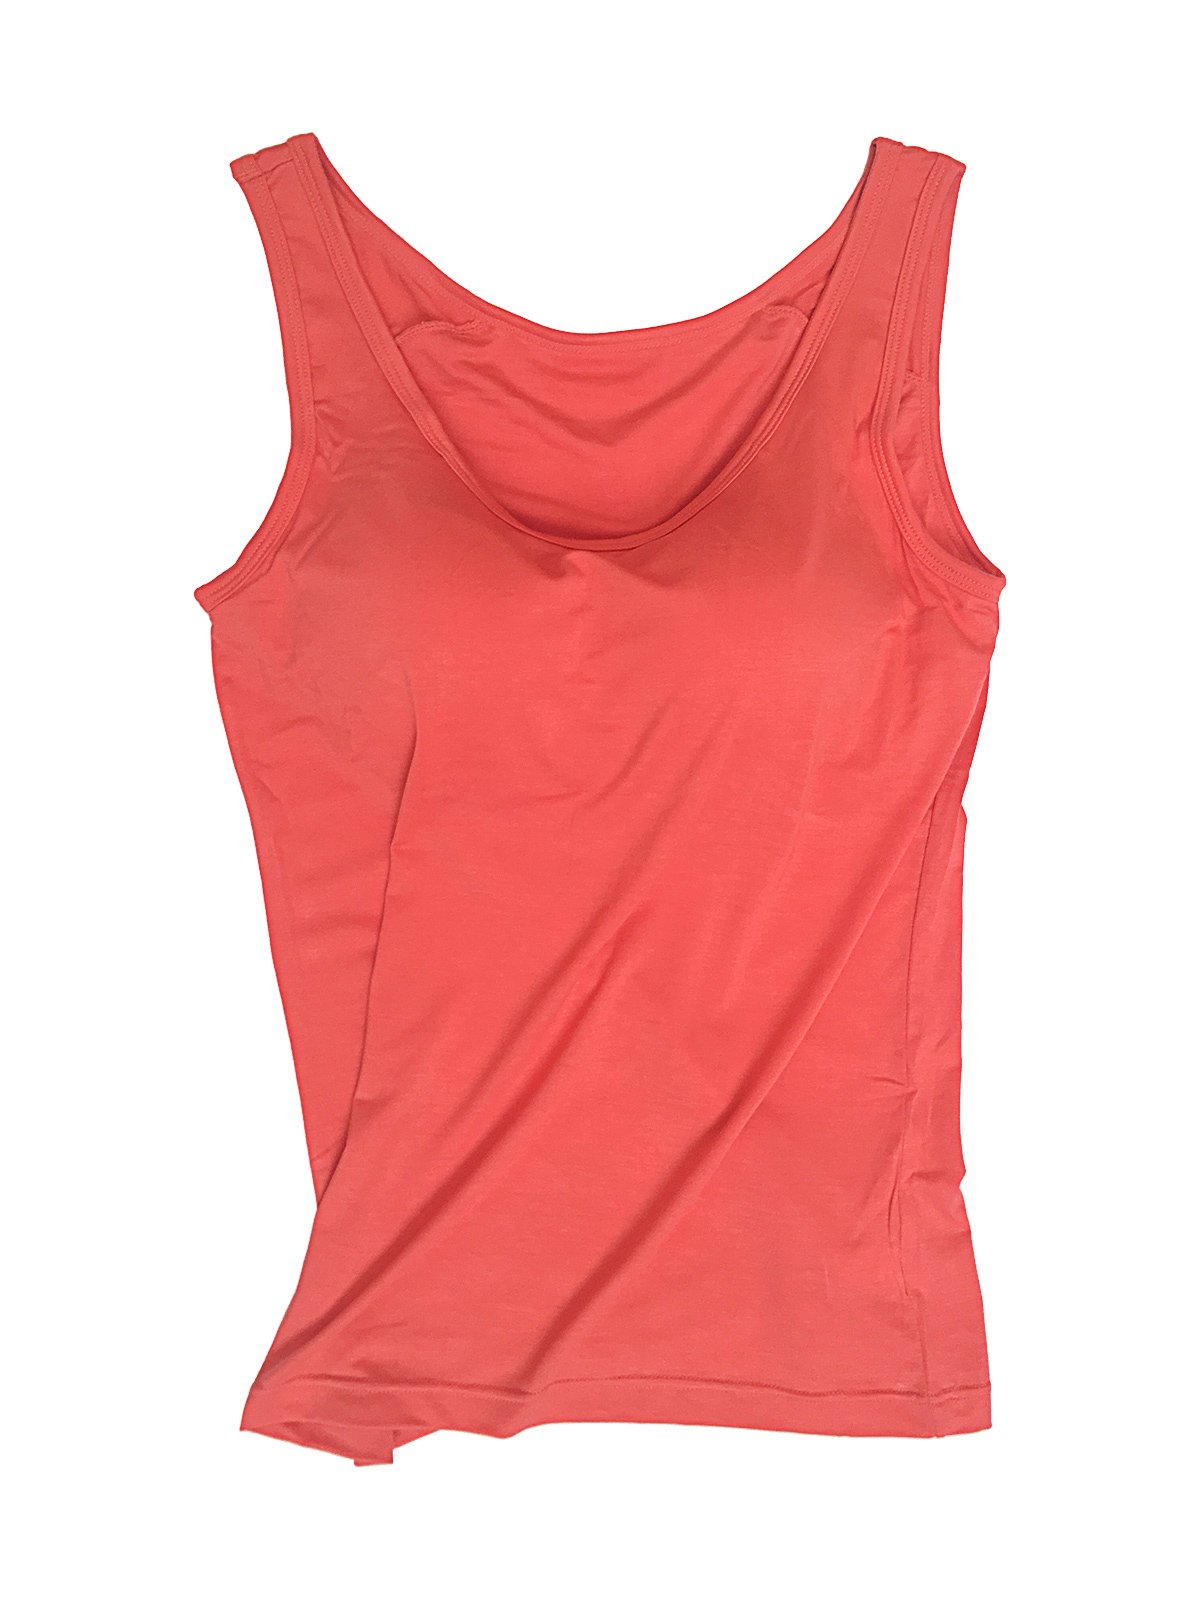 Aodrusa Womens Tank Tops with Built-in Bra Juniors Workout Top Tees